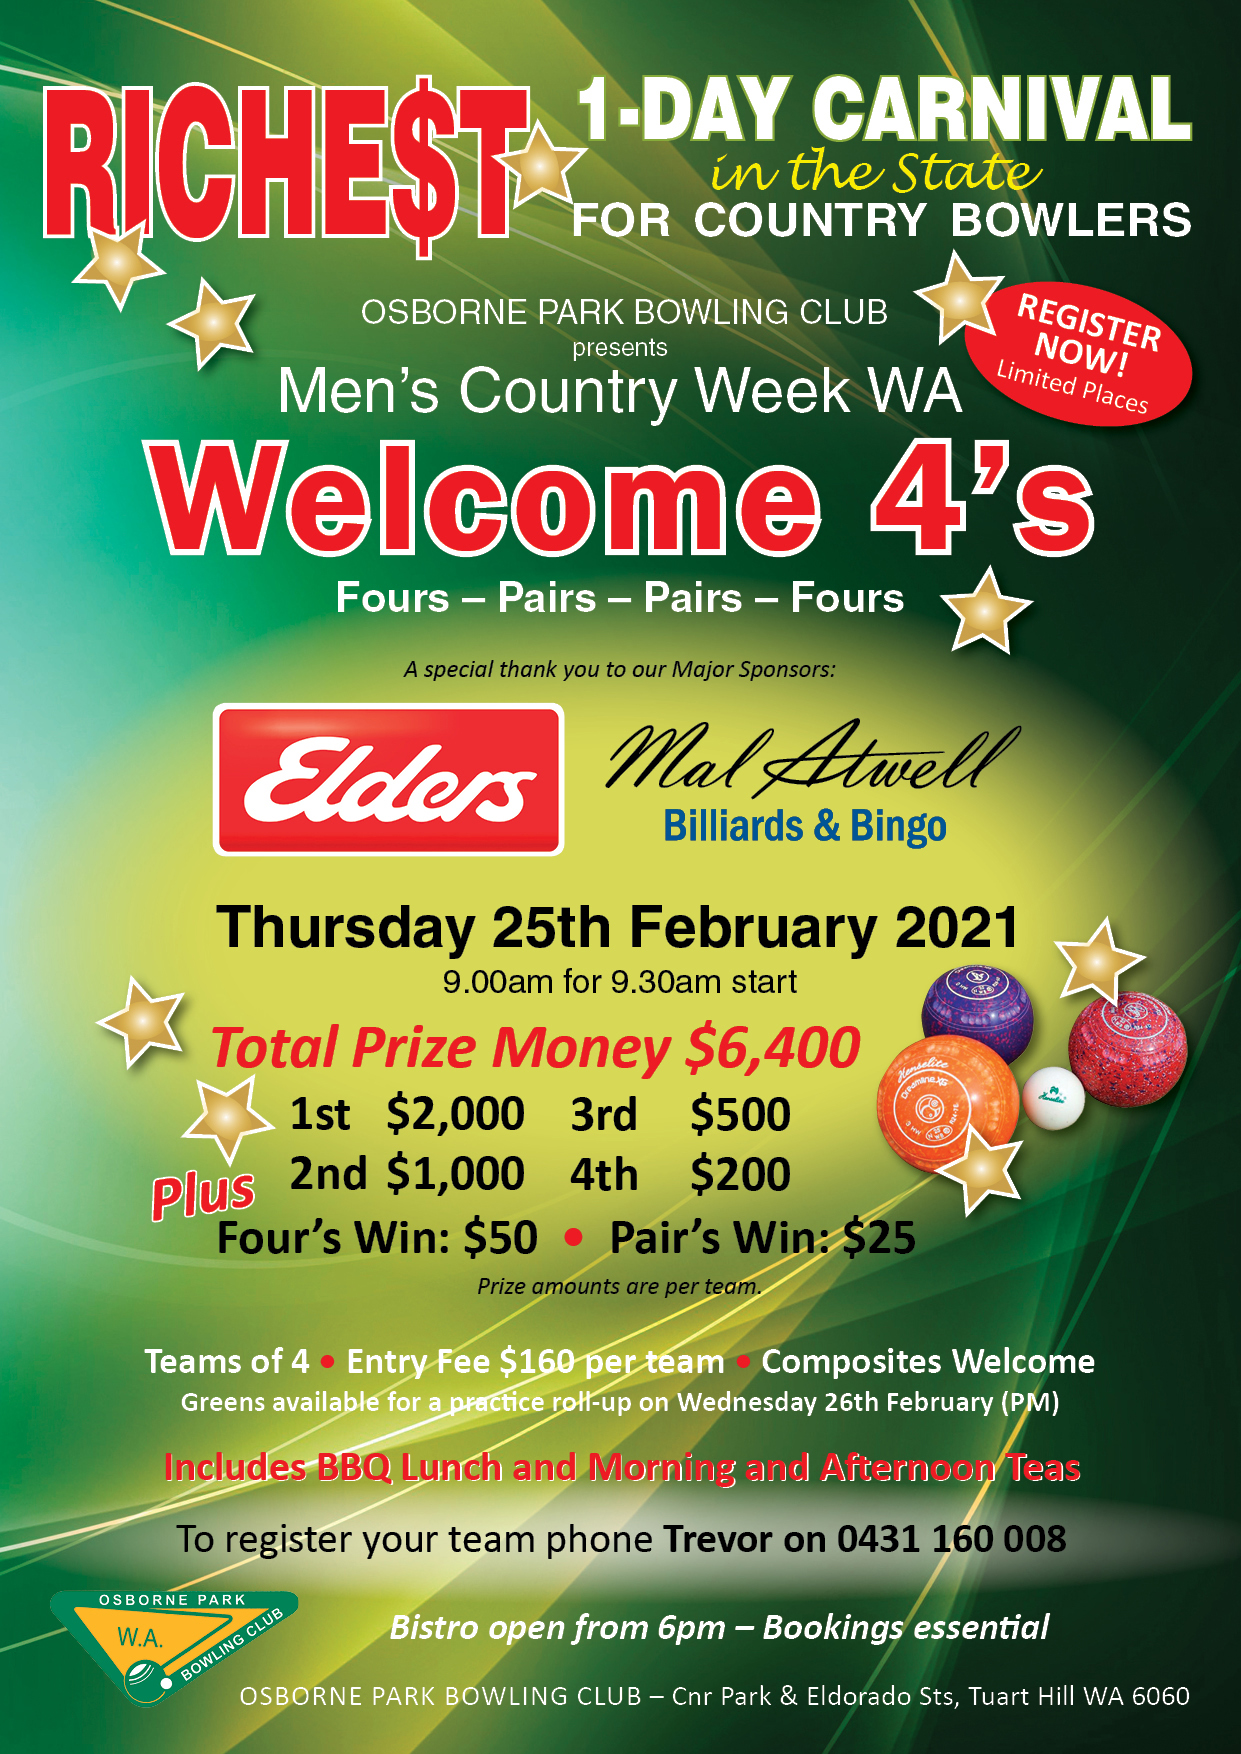 WelcomeFours_Feb21_Elders_MalAtwell_webs